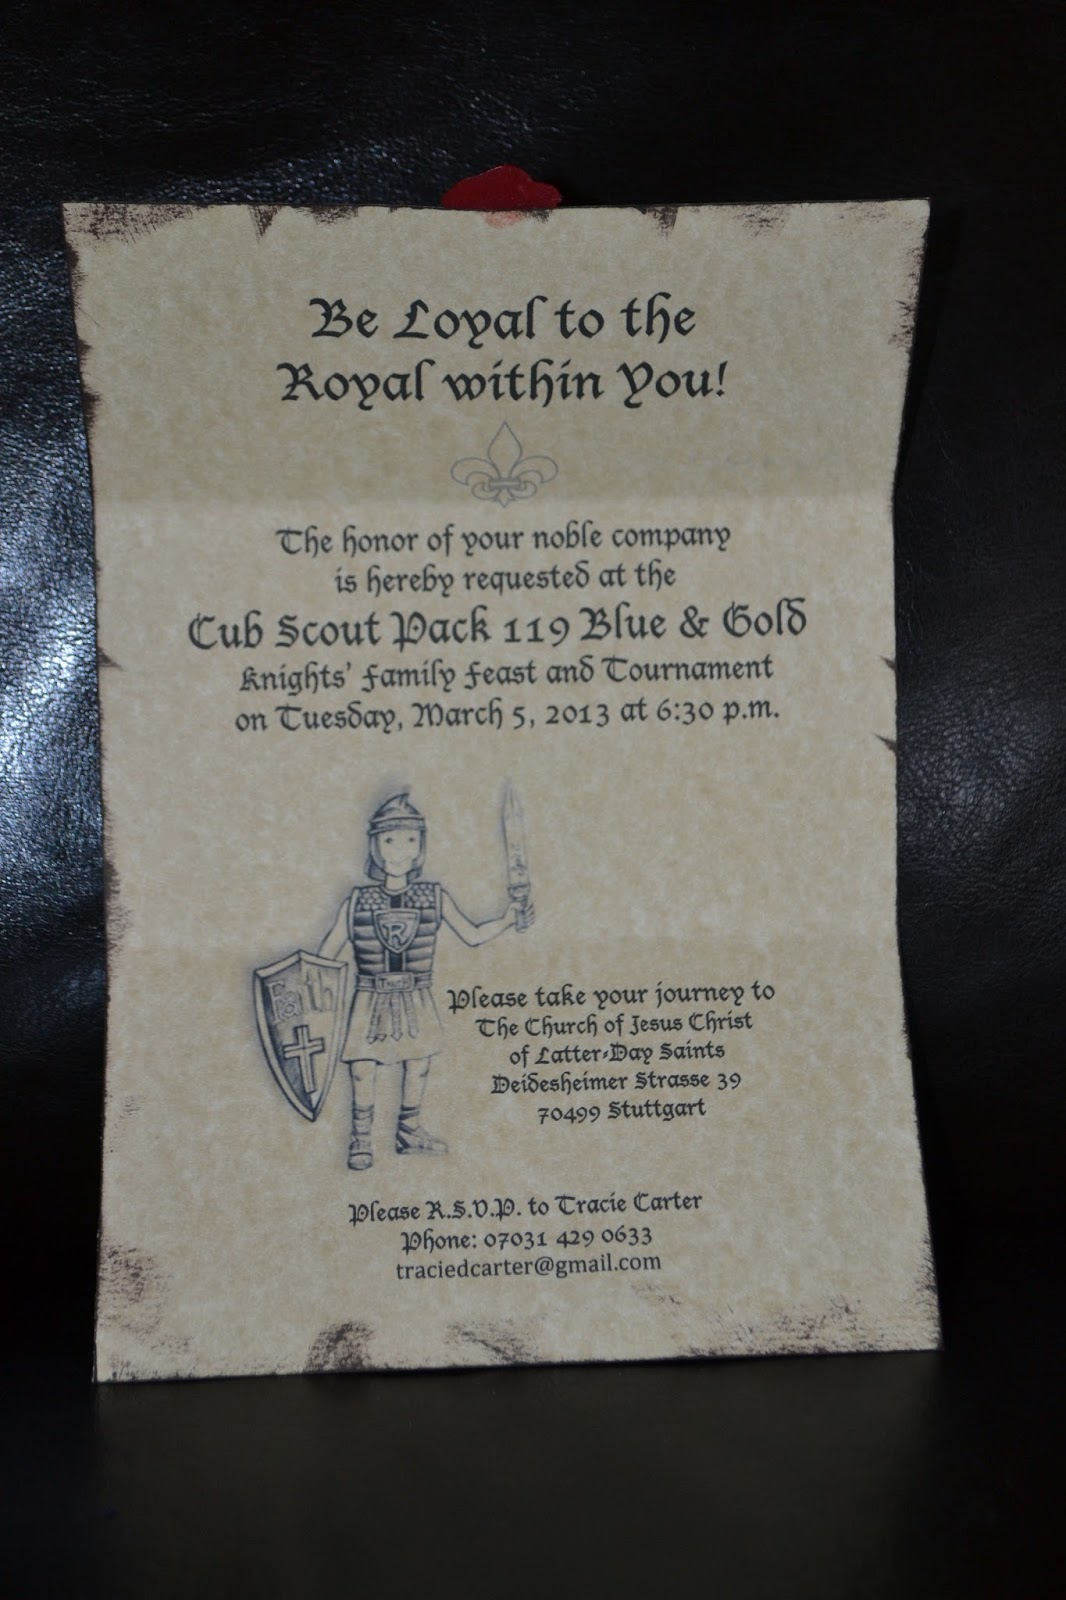 Carter Chronicle: Medieval Royal Cub Scout Blue & Gold Banquet